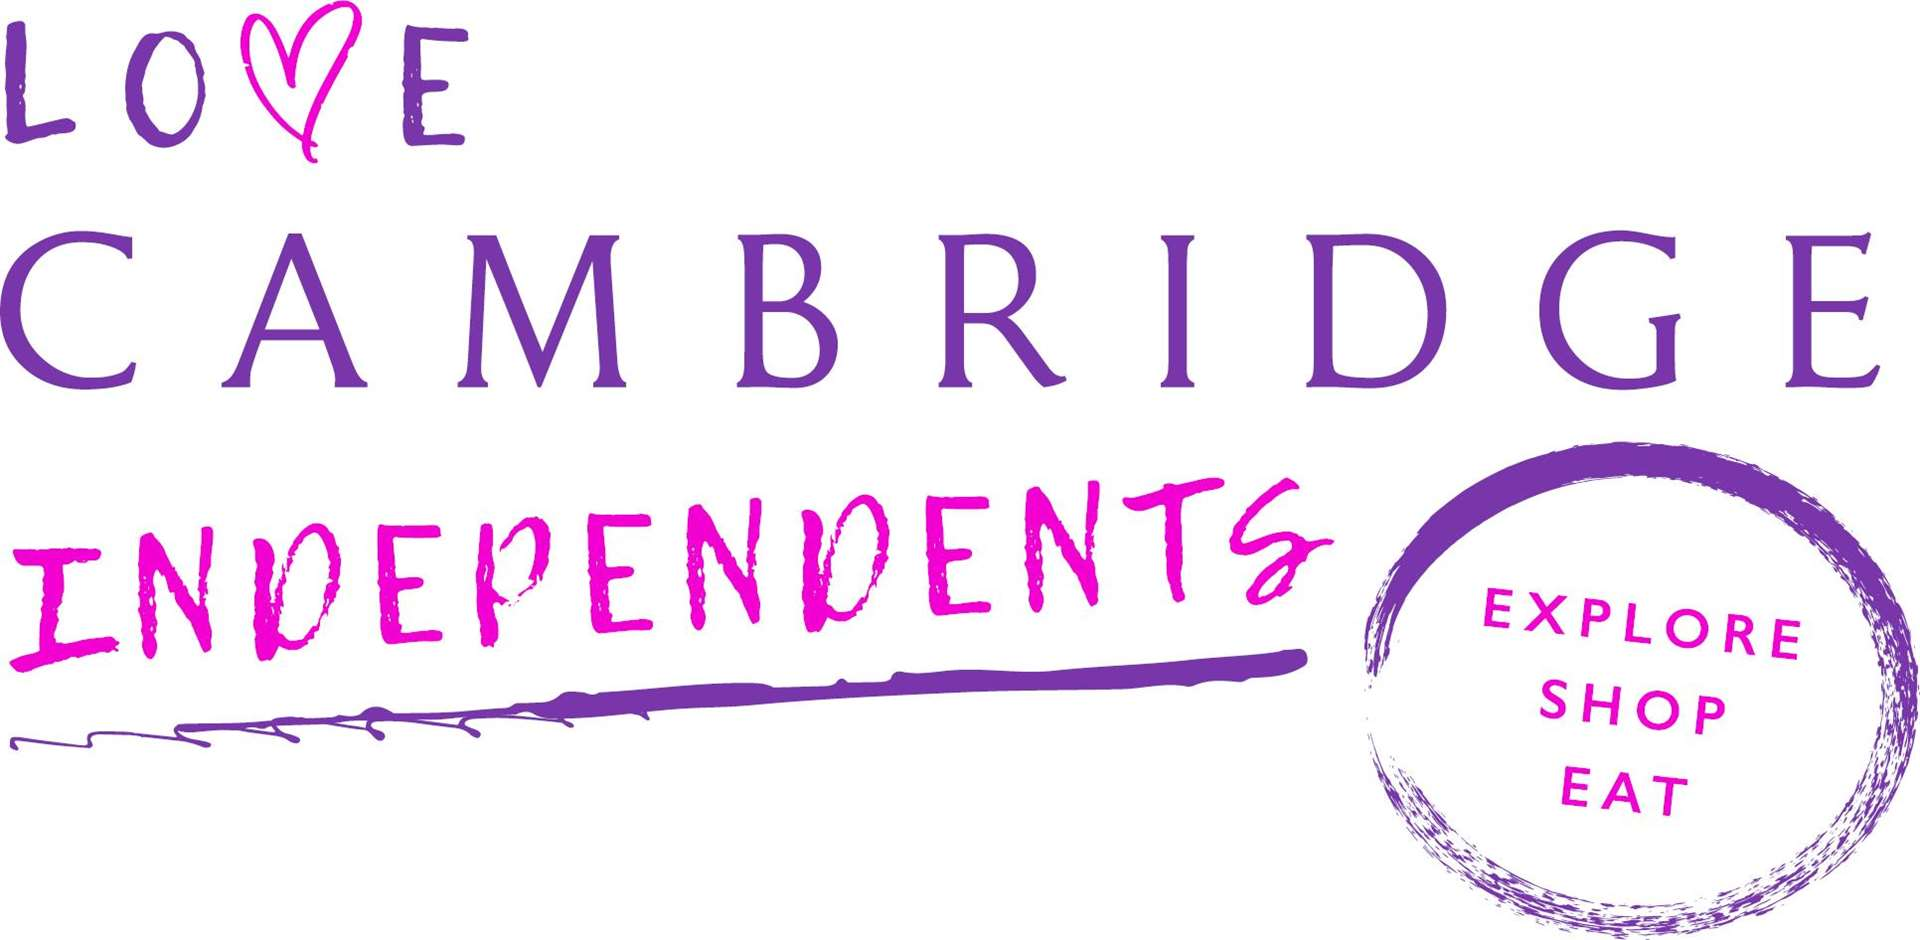 The Love Cambridge Independents logo (6906337)